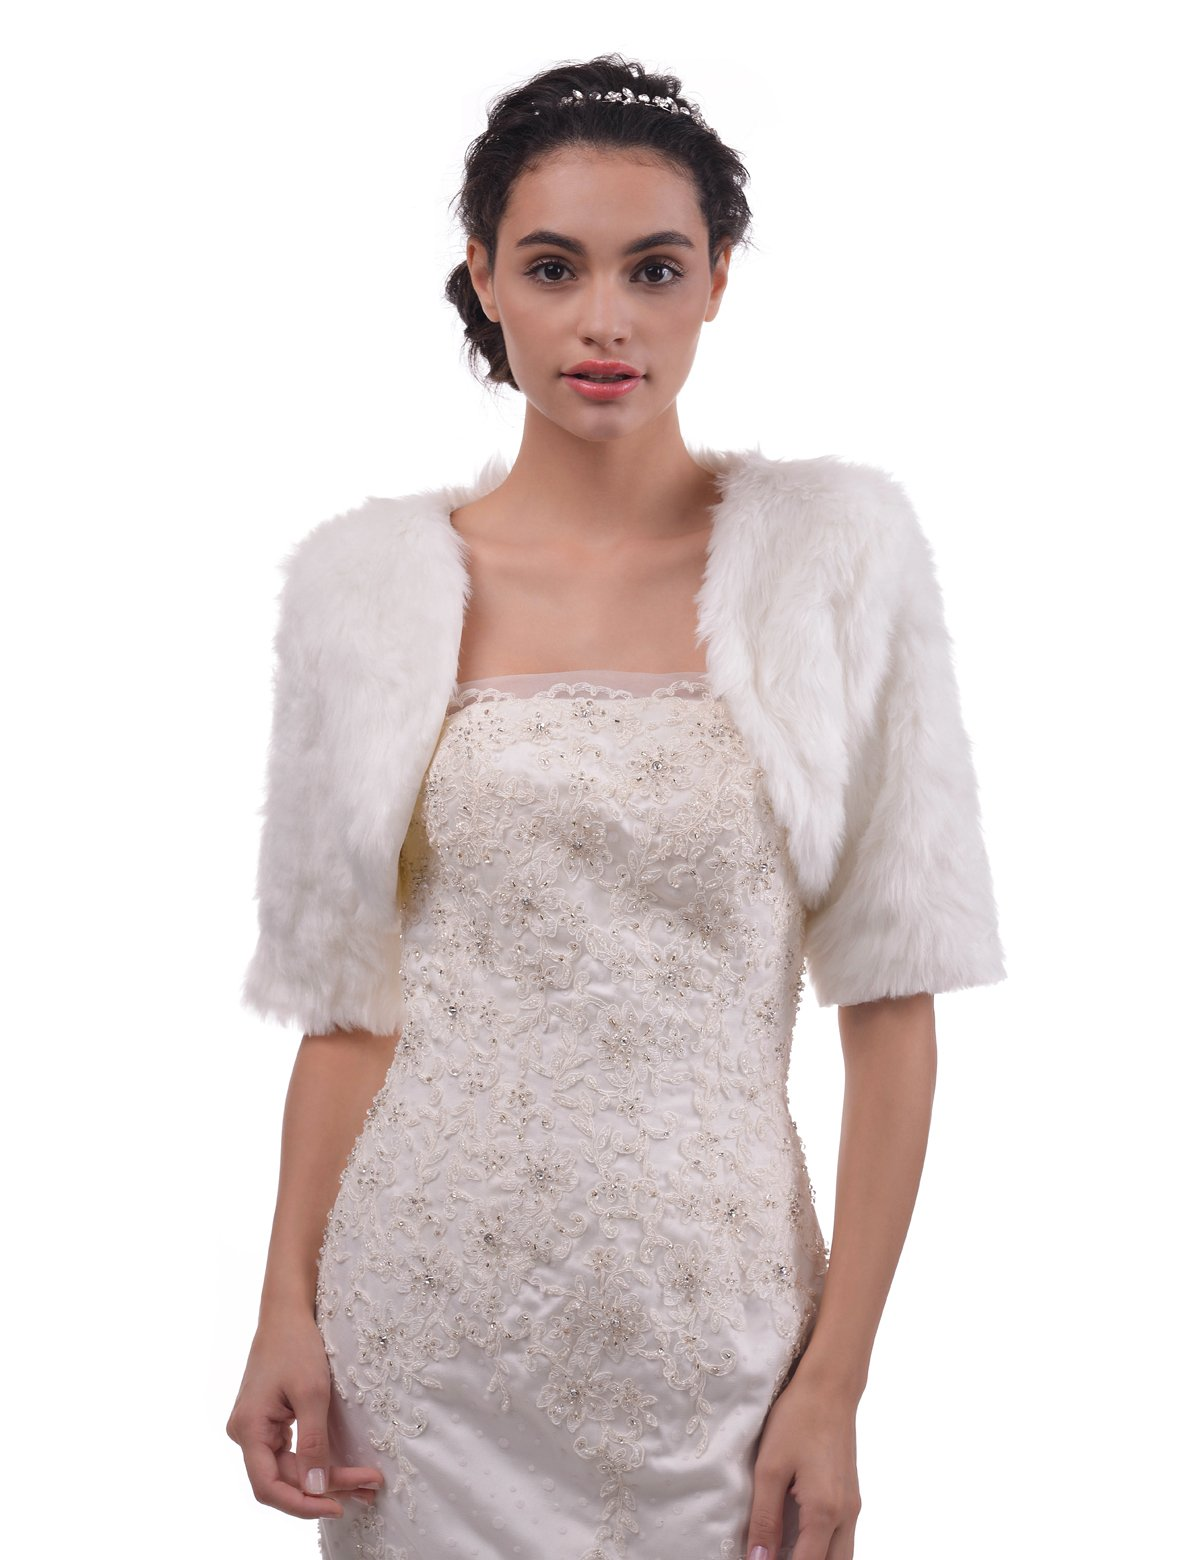 Topwedding Remedios Ivory Faux Fur Bridal Wrap Wedding Bolero Jacket Shrug With 3/4 Sleeves, L